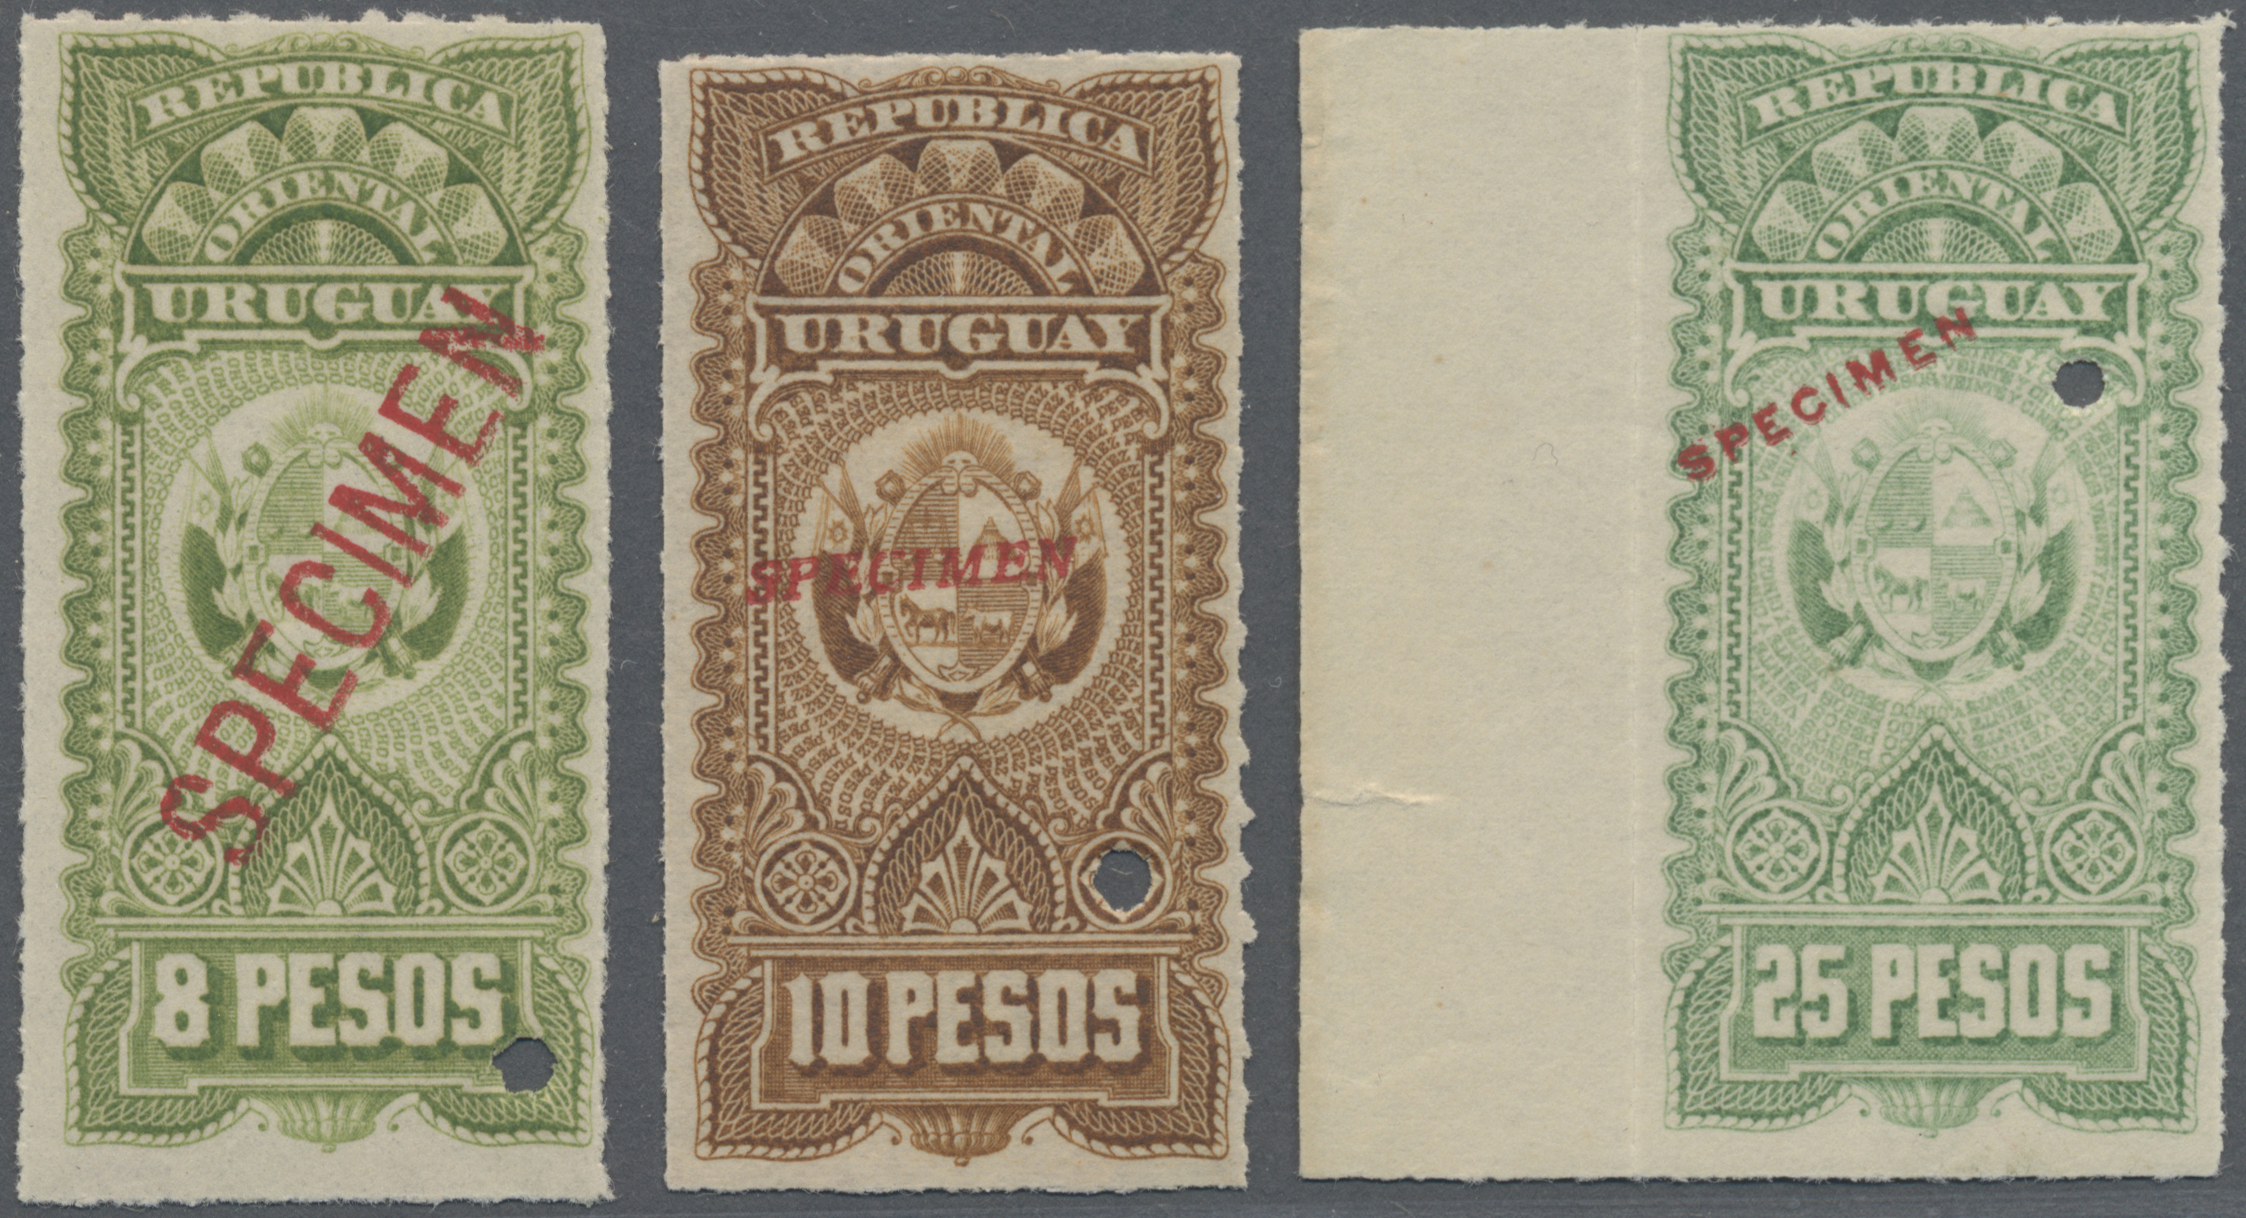 Lot 07622 - Uruguay  -  Auktionshaus Christoph Gärtner GmbH & Co. KG Sale #48 The Single Lots Philatelie